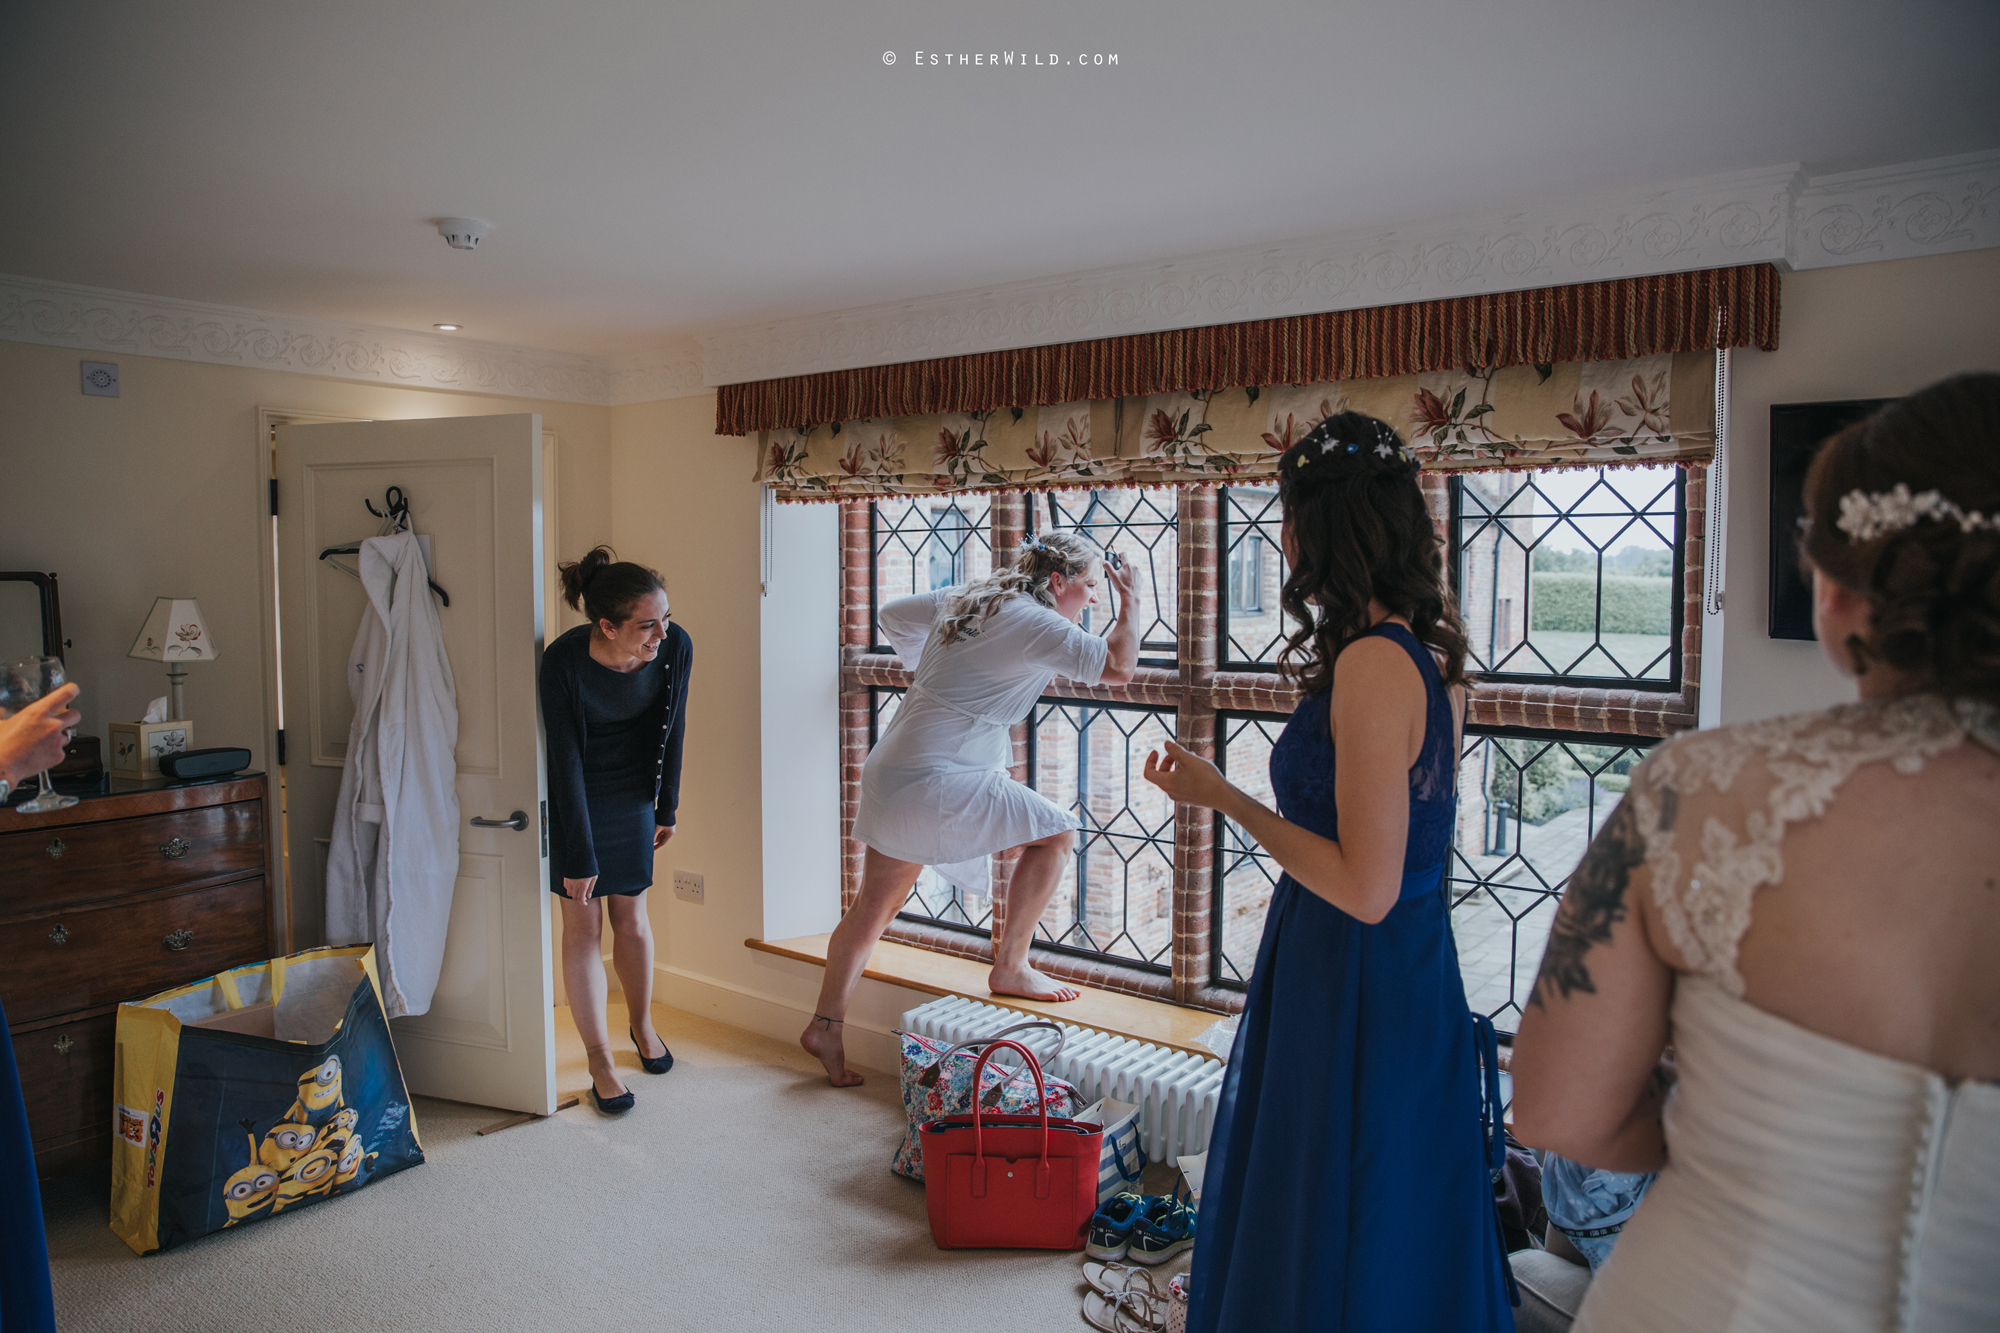 Old_Hall_Ely_Wedding_Esther_Wild_Photographer_IMG_0607.jpg